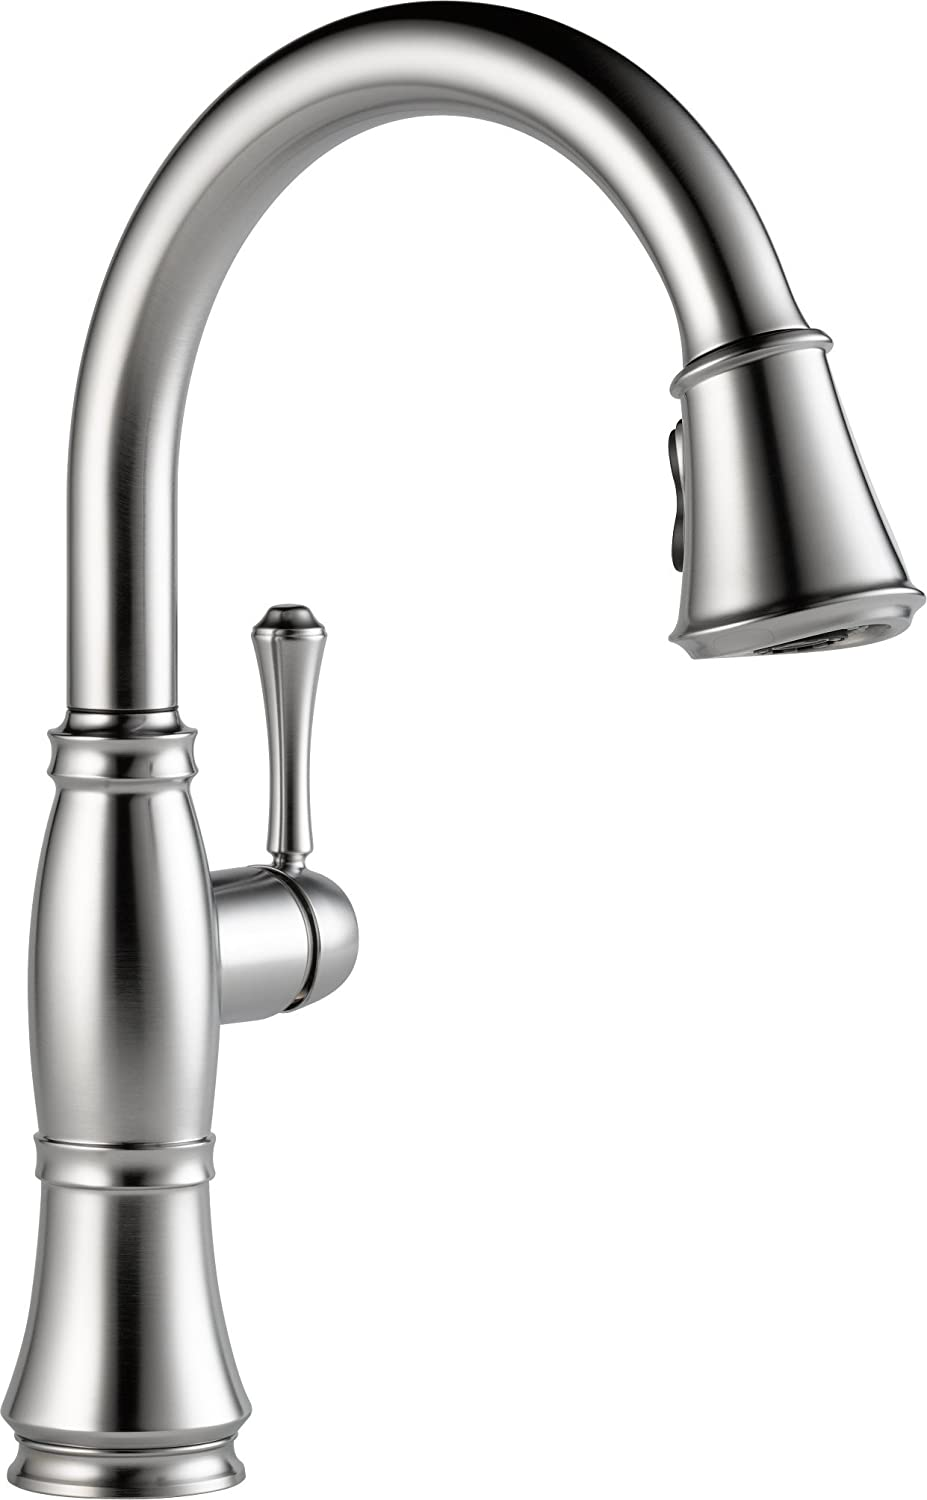 Moen Pull Down Sprayer Kitchen Faucet